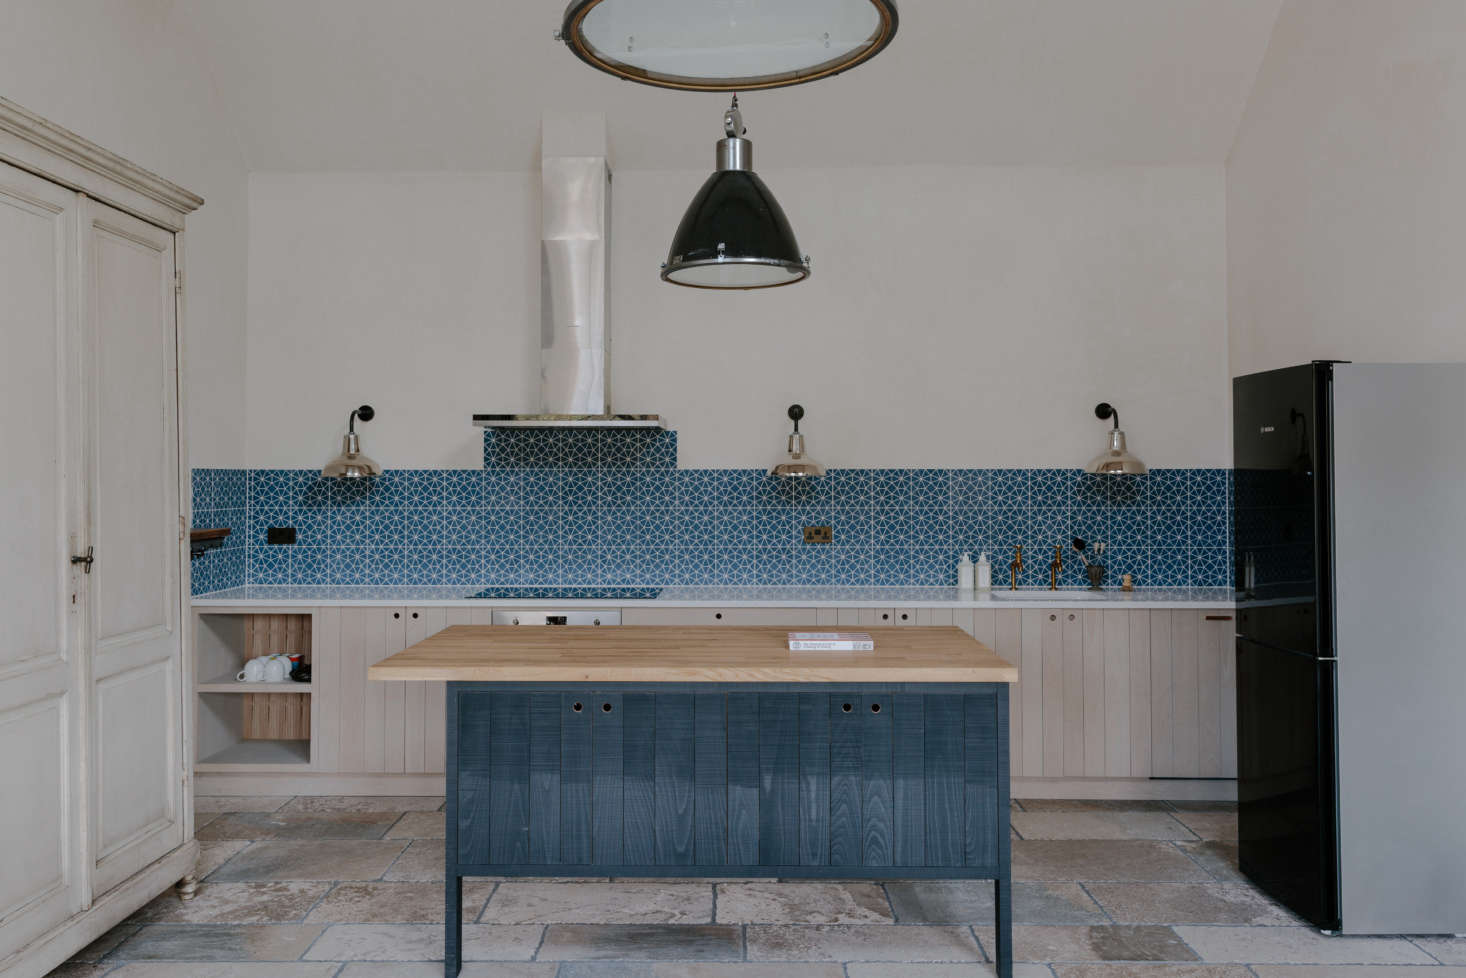 The cottage kitchen—including the double faucet—is by DeVol, with a backsplash of blue Bert and May tiles and industrial lights from Trainspotters.